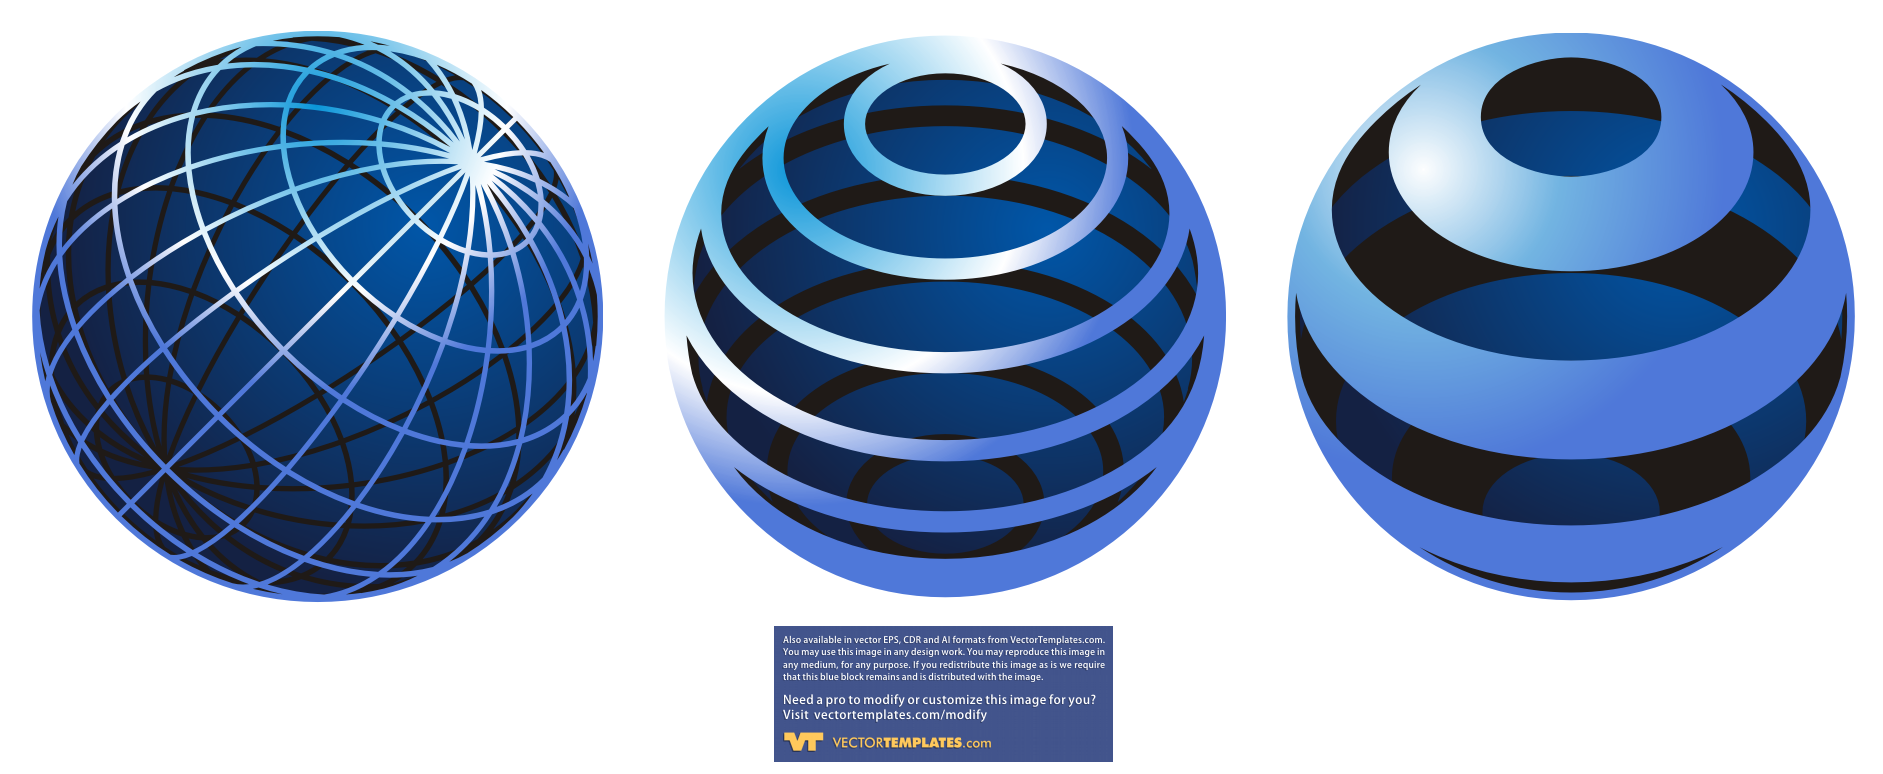 1883x774 Images Of Globes, Planets, Earth.